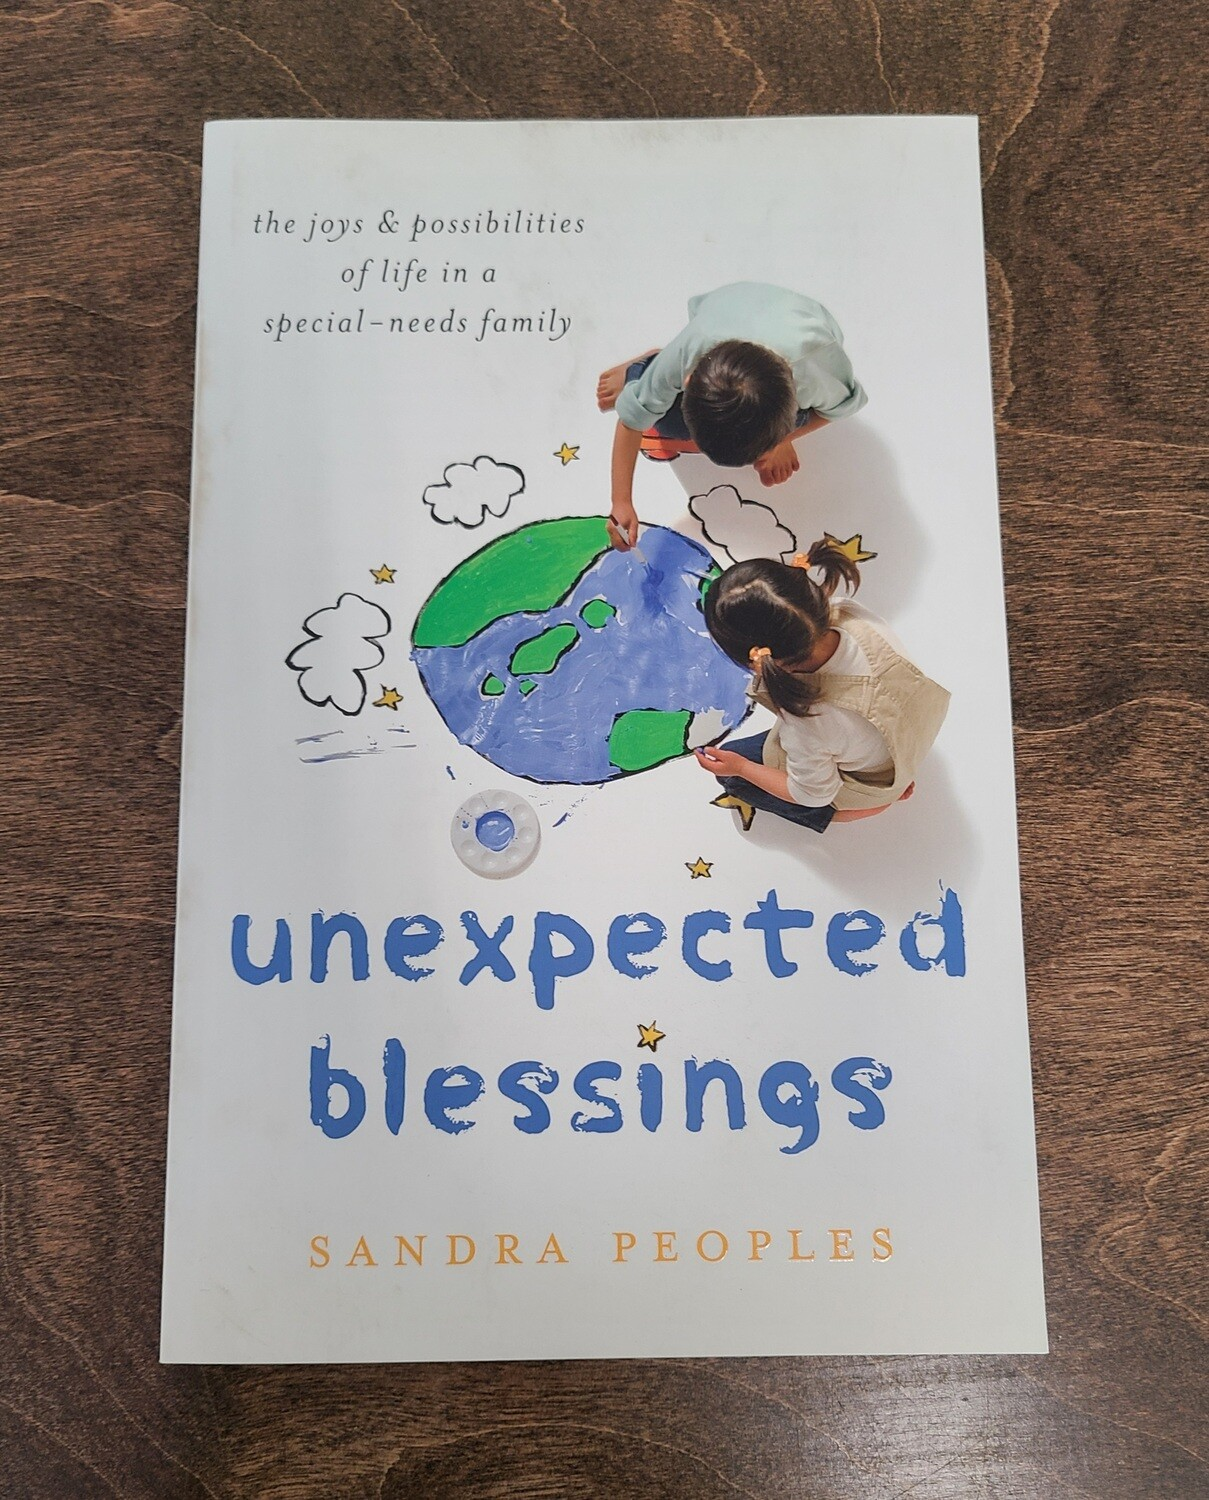 Unexpected Blessings: The Joys and Possibilities of Life in a Special-Needs Family by Sandra Peoples